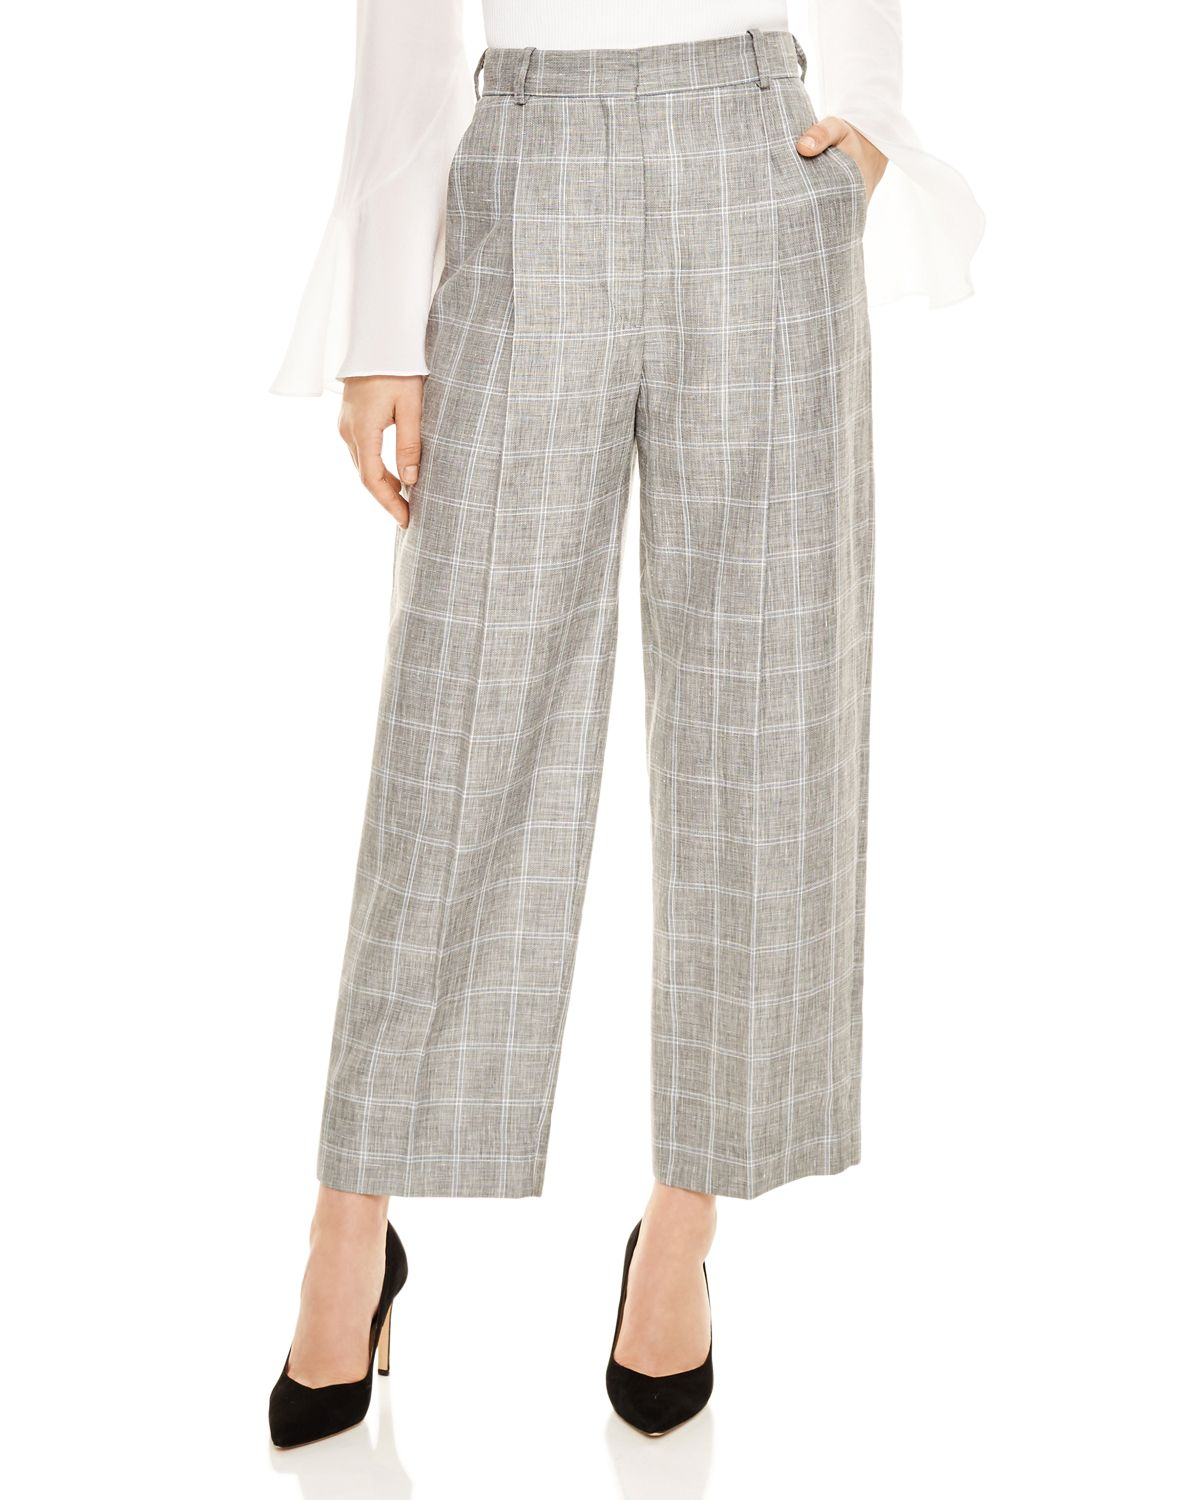 Hoviv Cropped Wide Leg Plaid Pants by Sandro